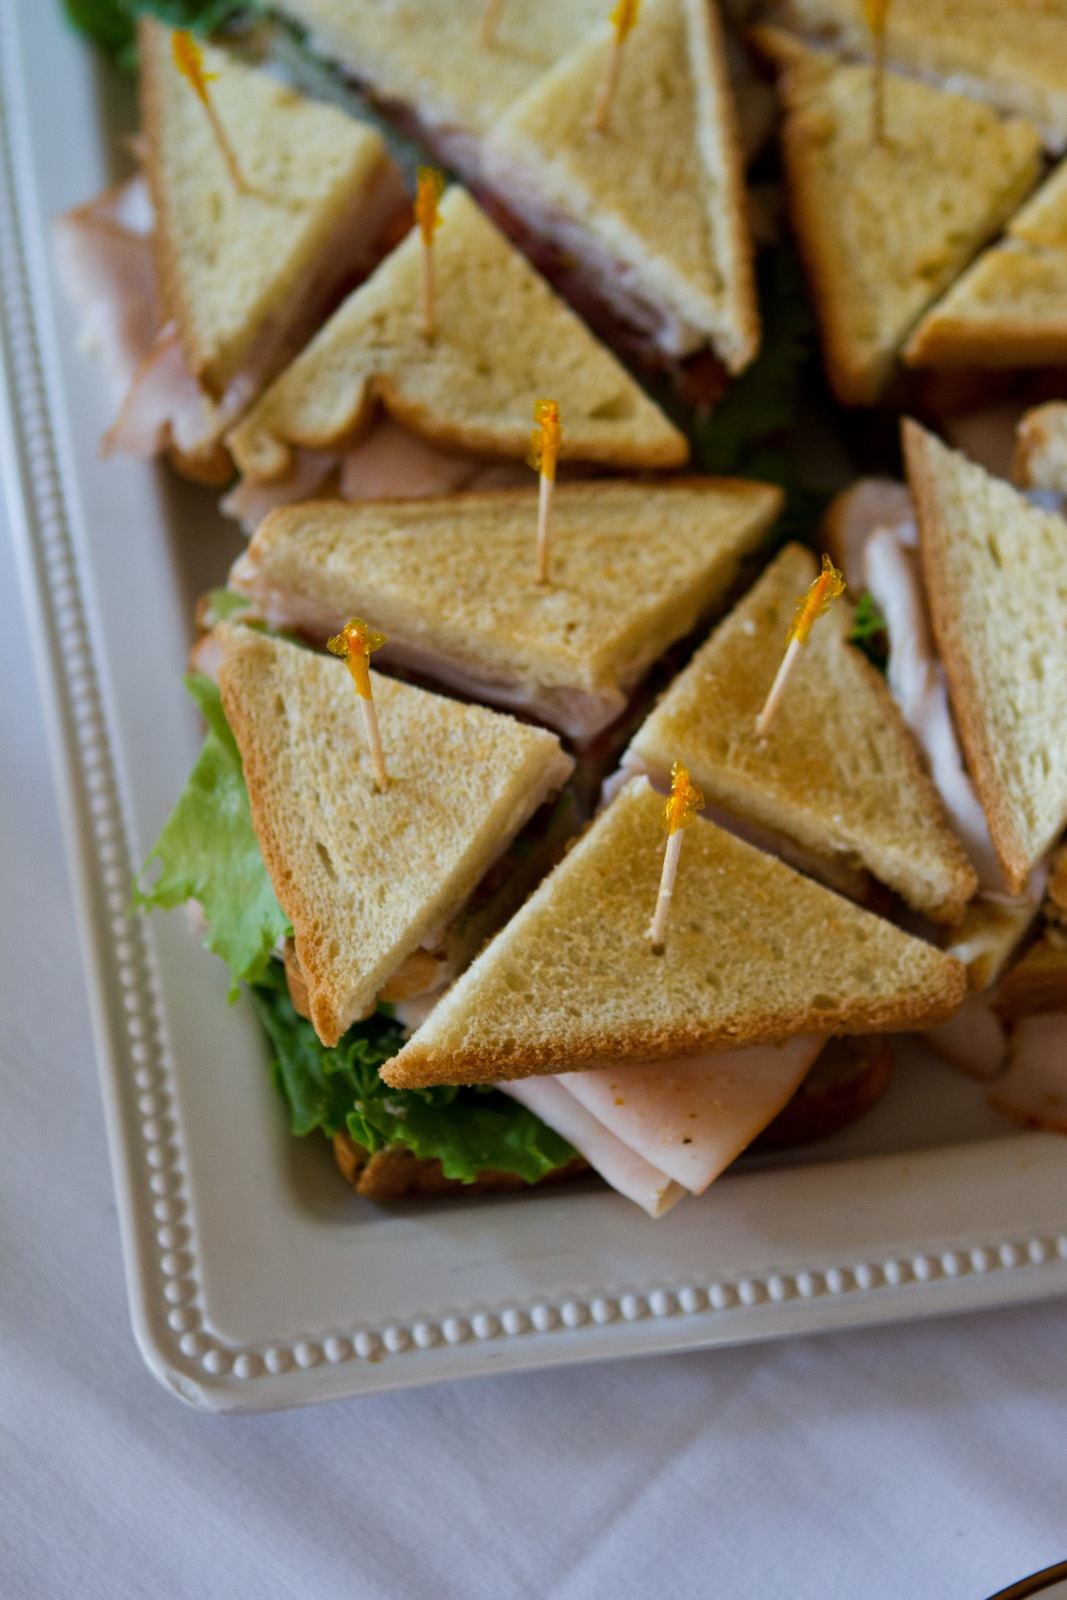 Wedding Brunch Reception - Turkey Club Sandwiches - Photo Courtesy of Brian Samuels Photography